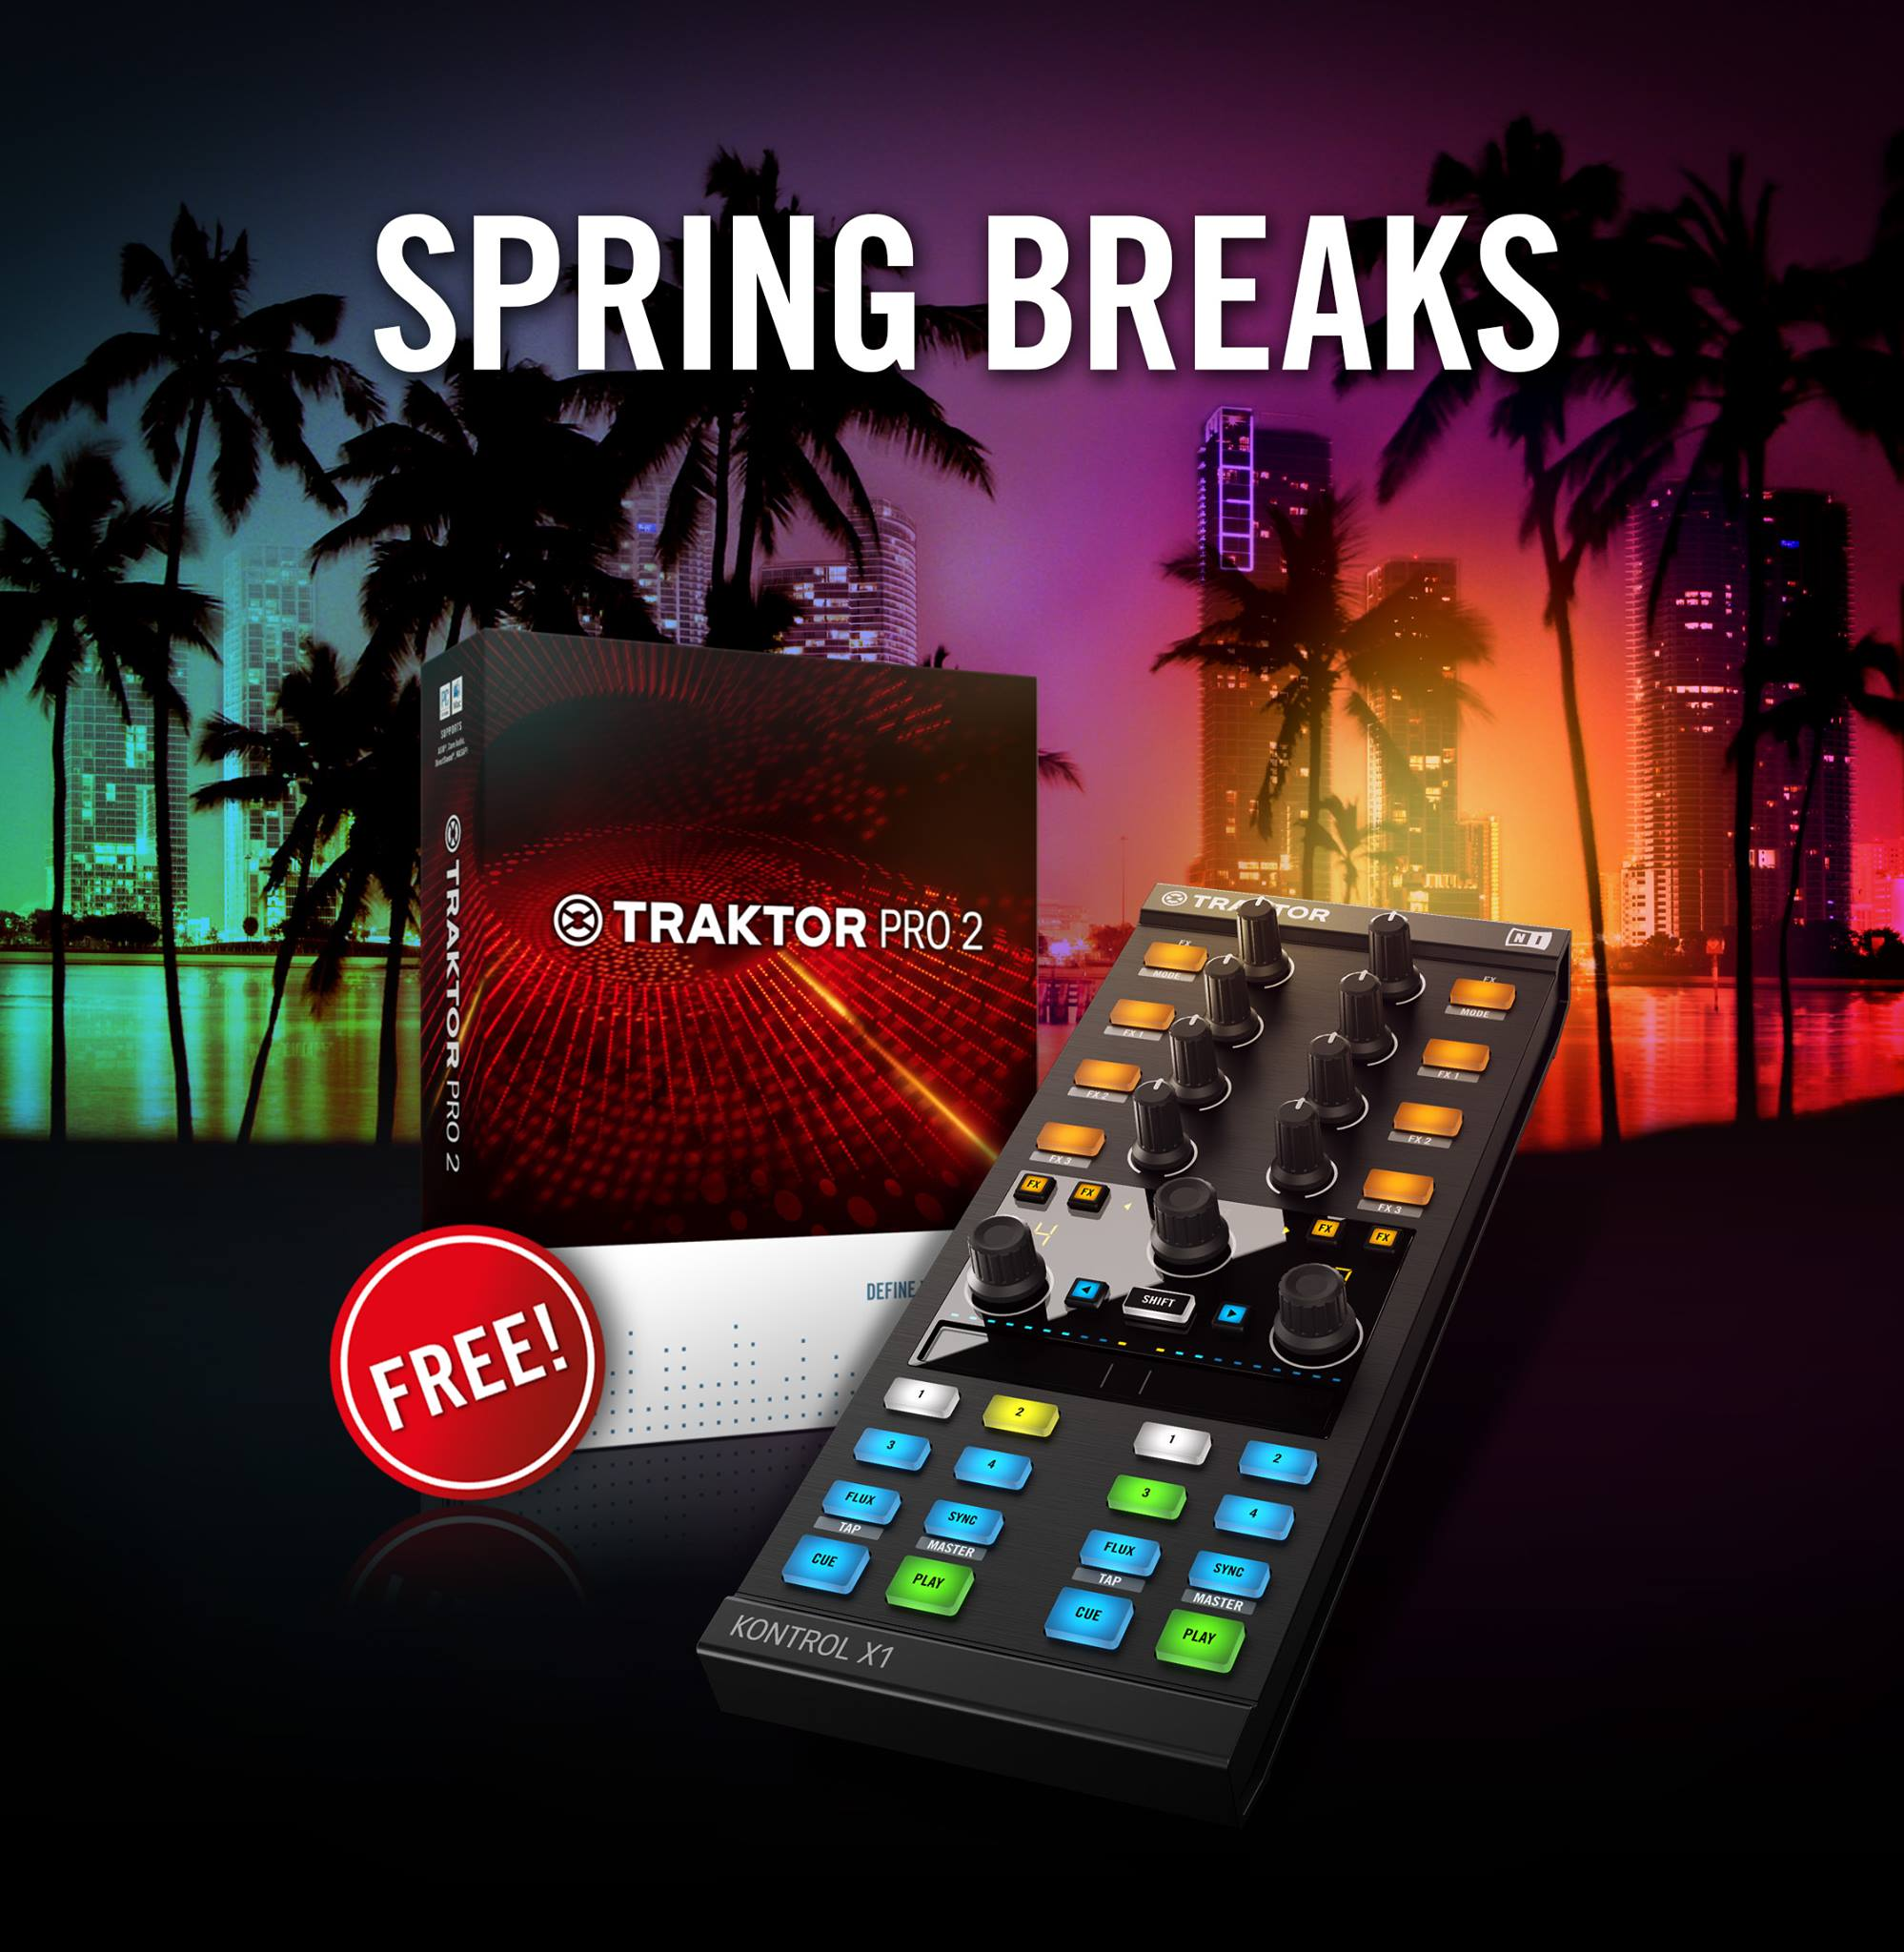 For a limited time, get a free copy of Traktor Pro 2 with every purchase of the Traktor Kontrol X1 controller.